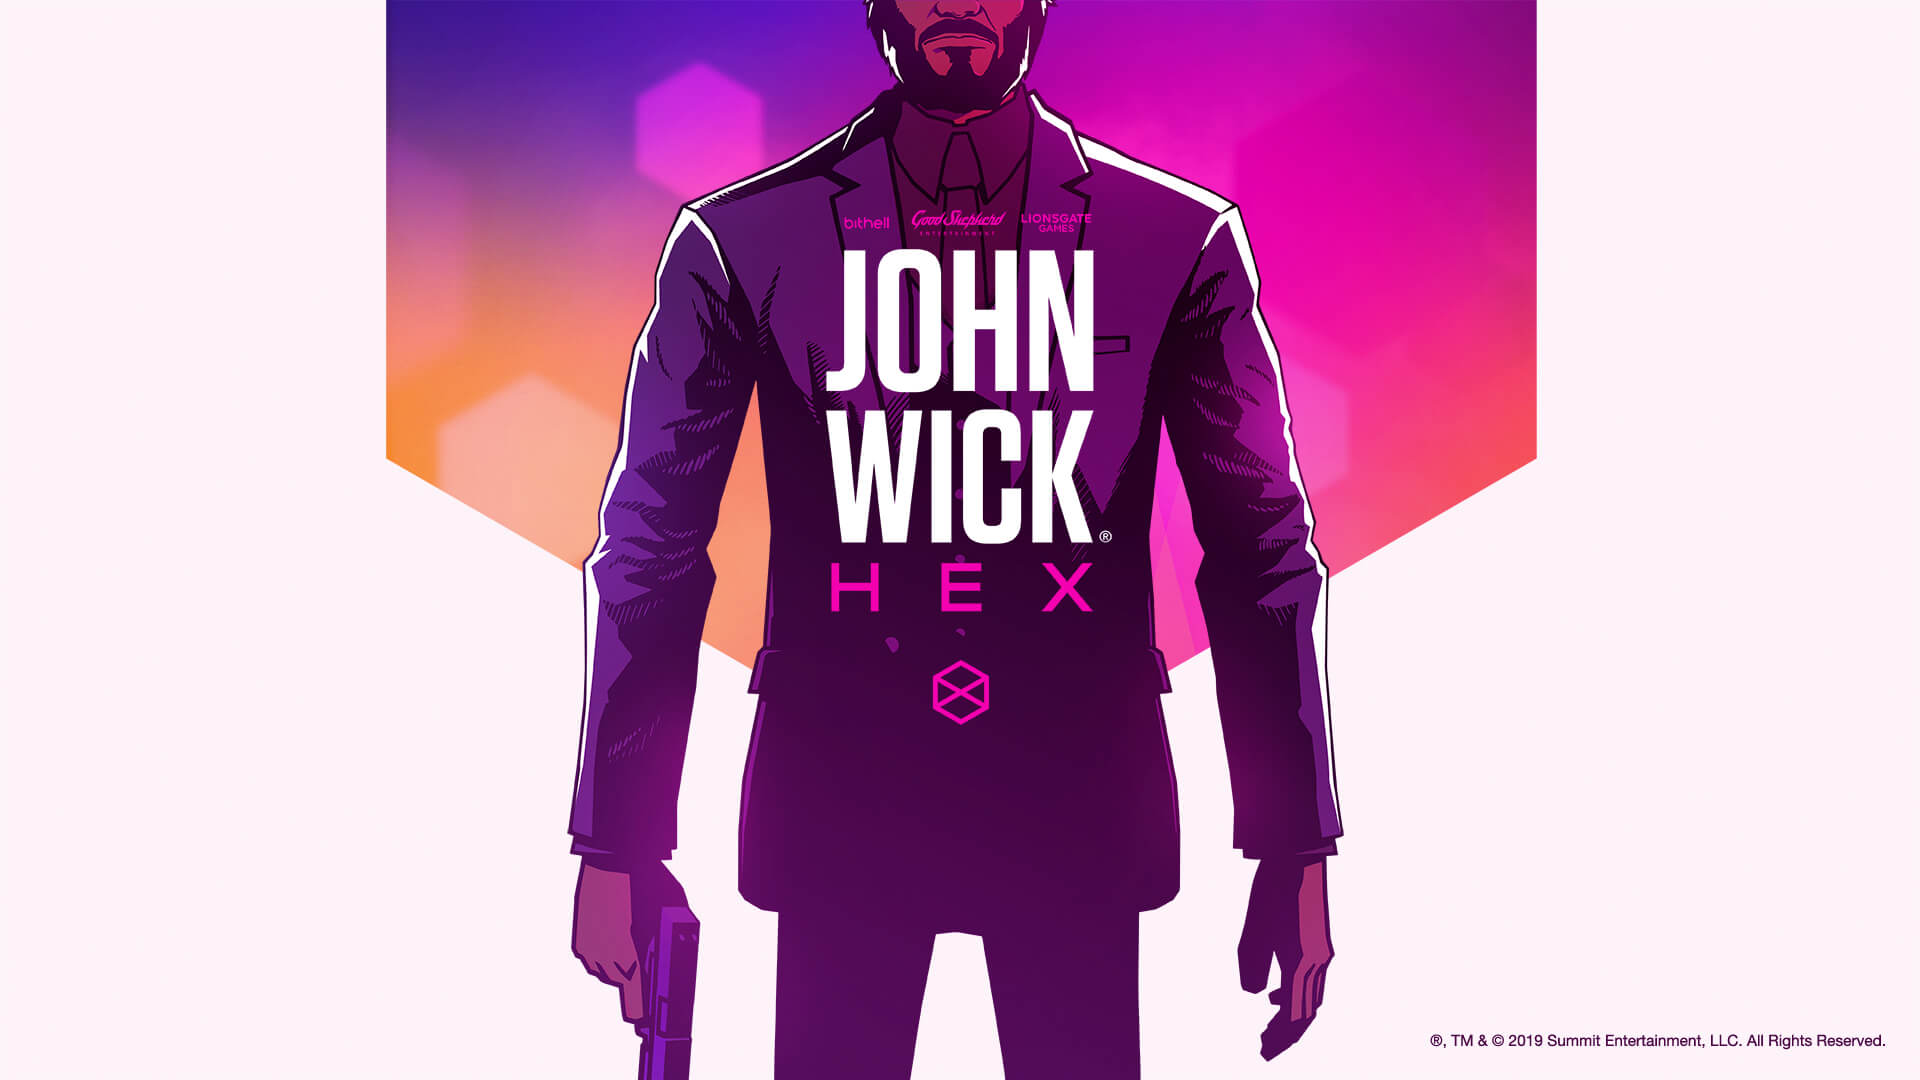 John Wick Hex Review: How He Became Baba Yaga